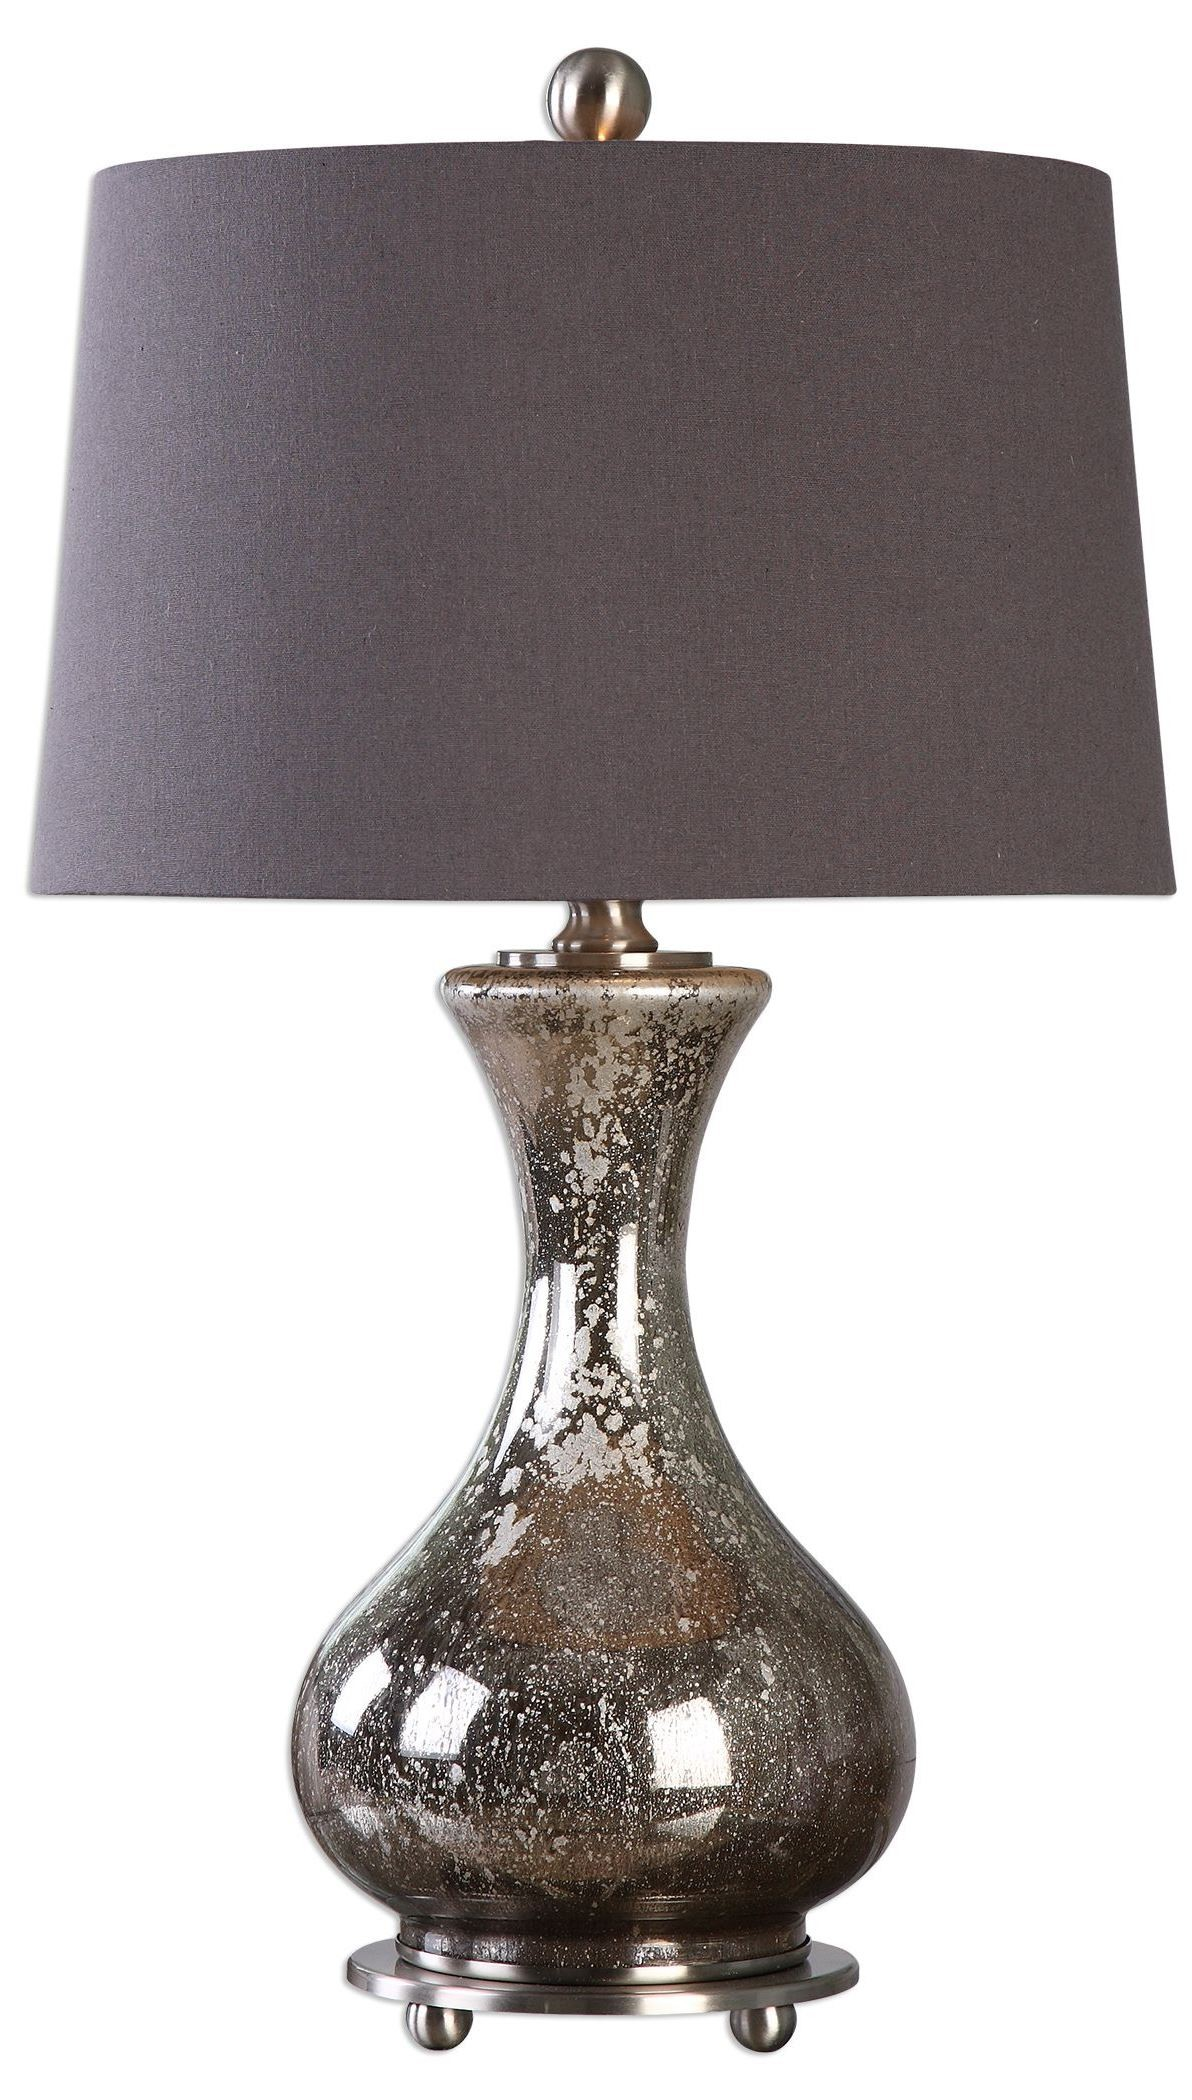 Pioverna Mercury Glass Table Lamp From Uttermost 27155 Coleman Furniture